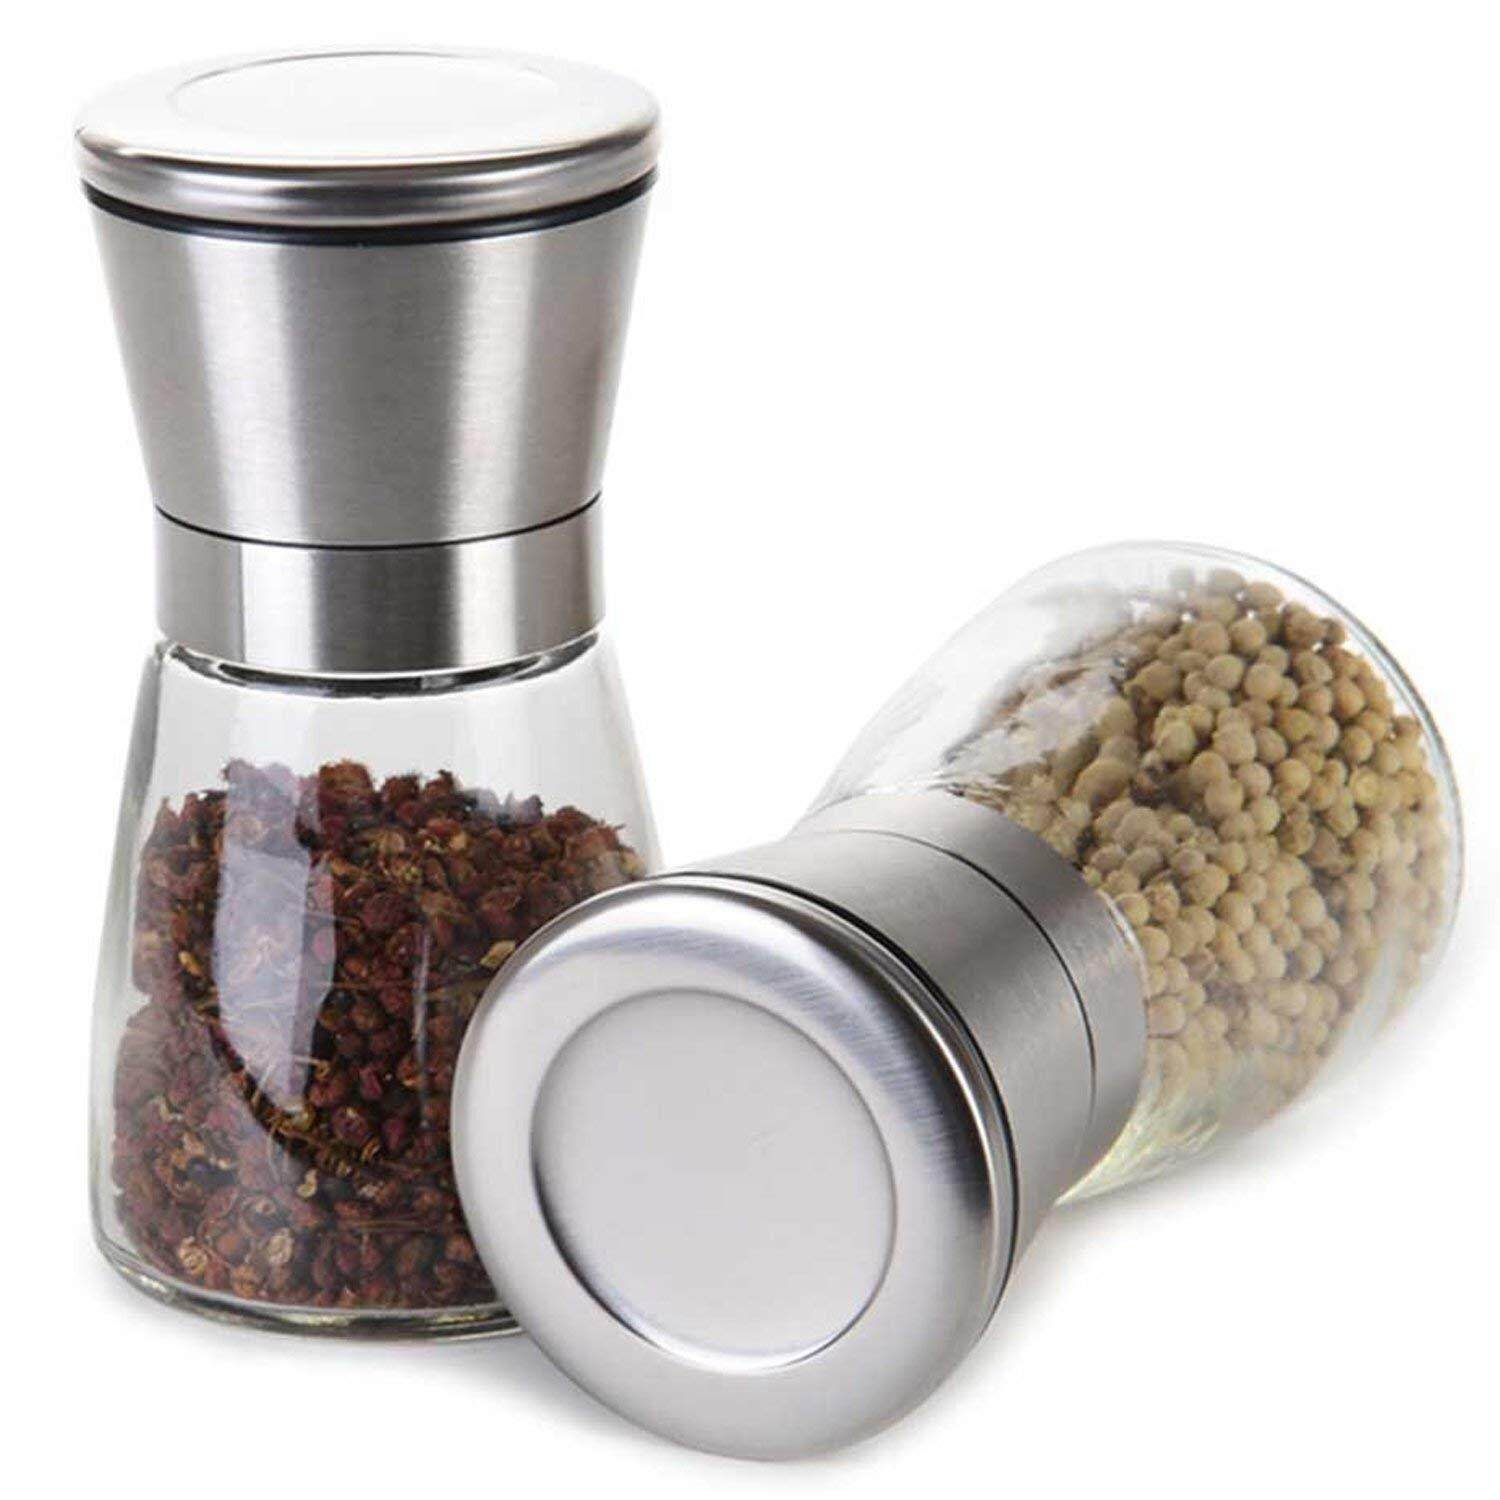 2-Pack Kitchen Premium Brushed Stainless Steel Salt & Pepper Grinder With Adjustable Coarseness By Skinartwork